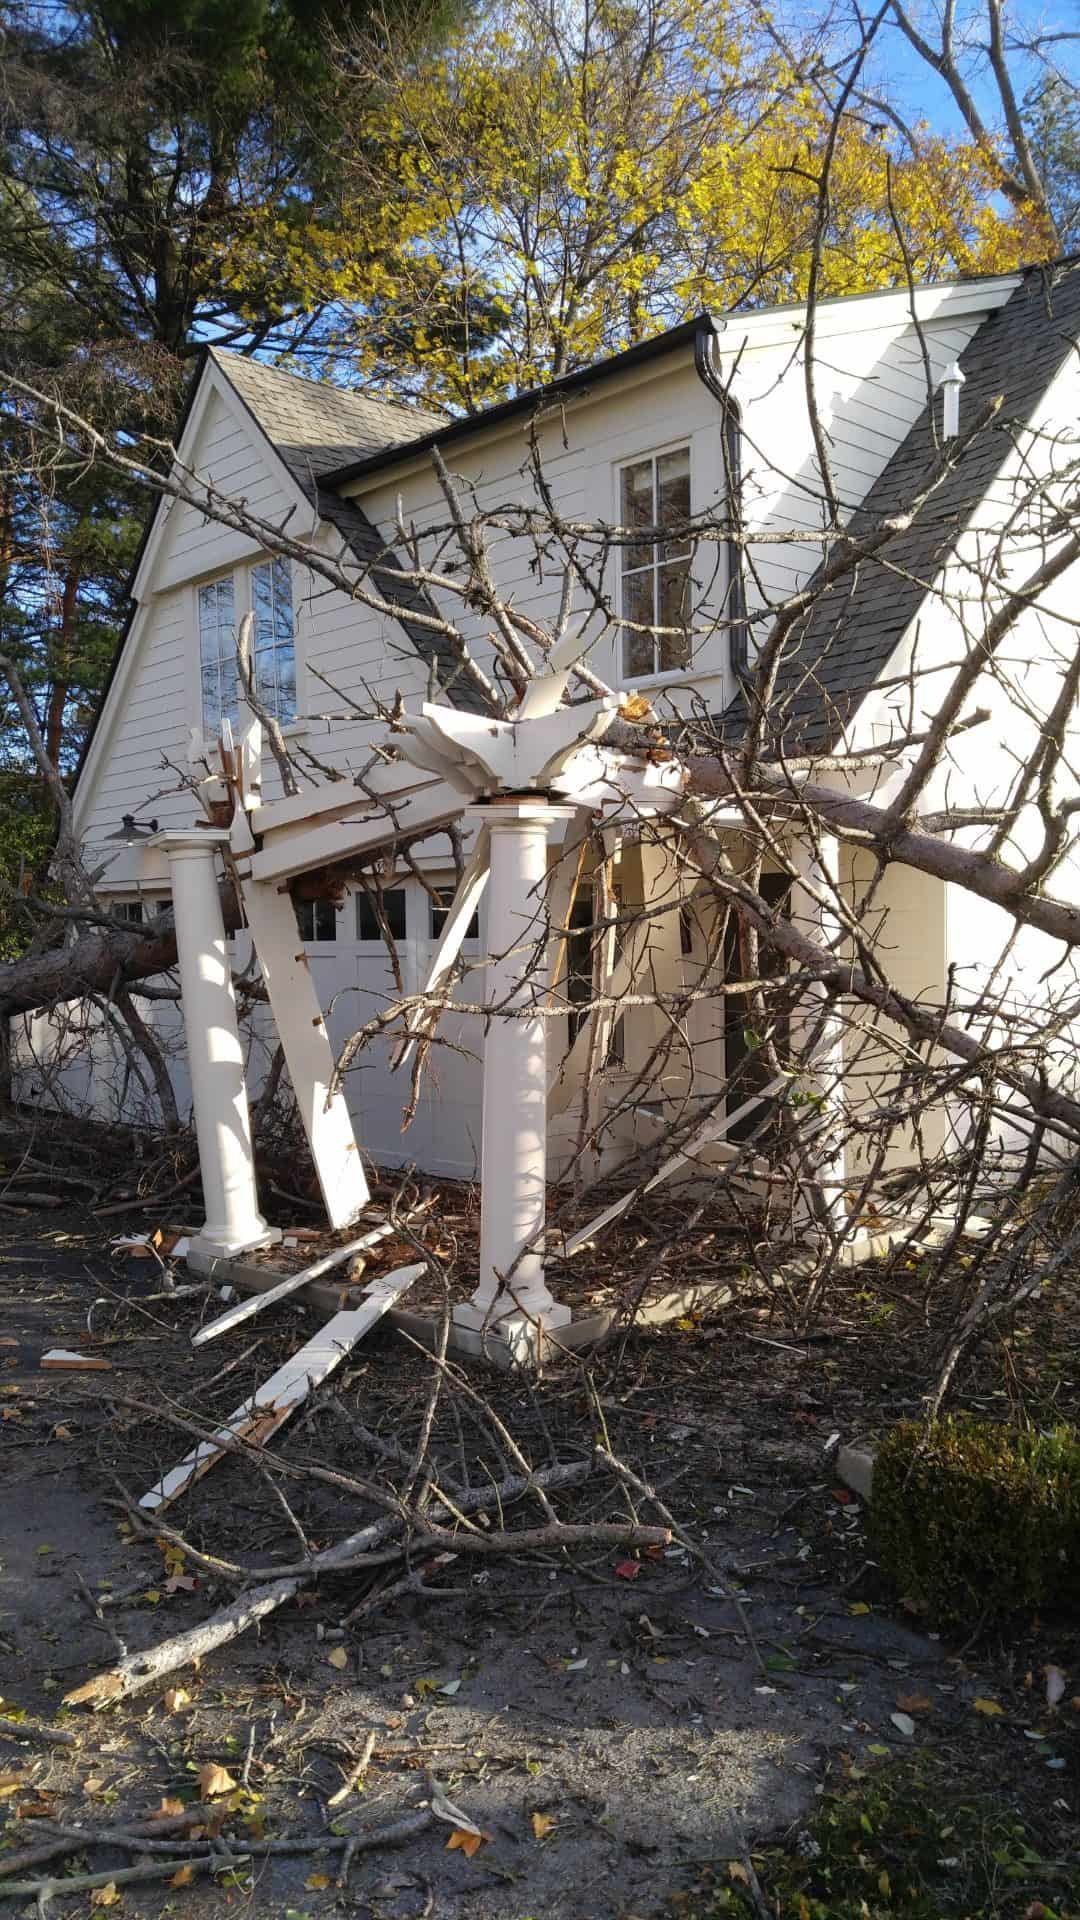 Tree Service of Troy Michigan house damaged from tree falling during storm